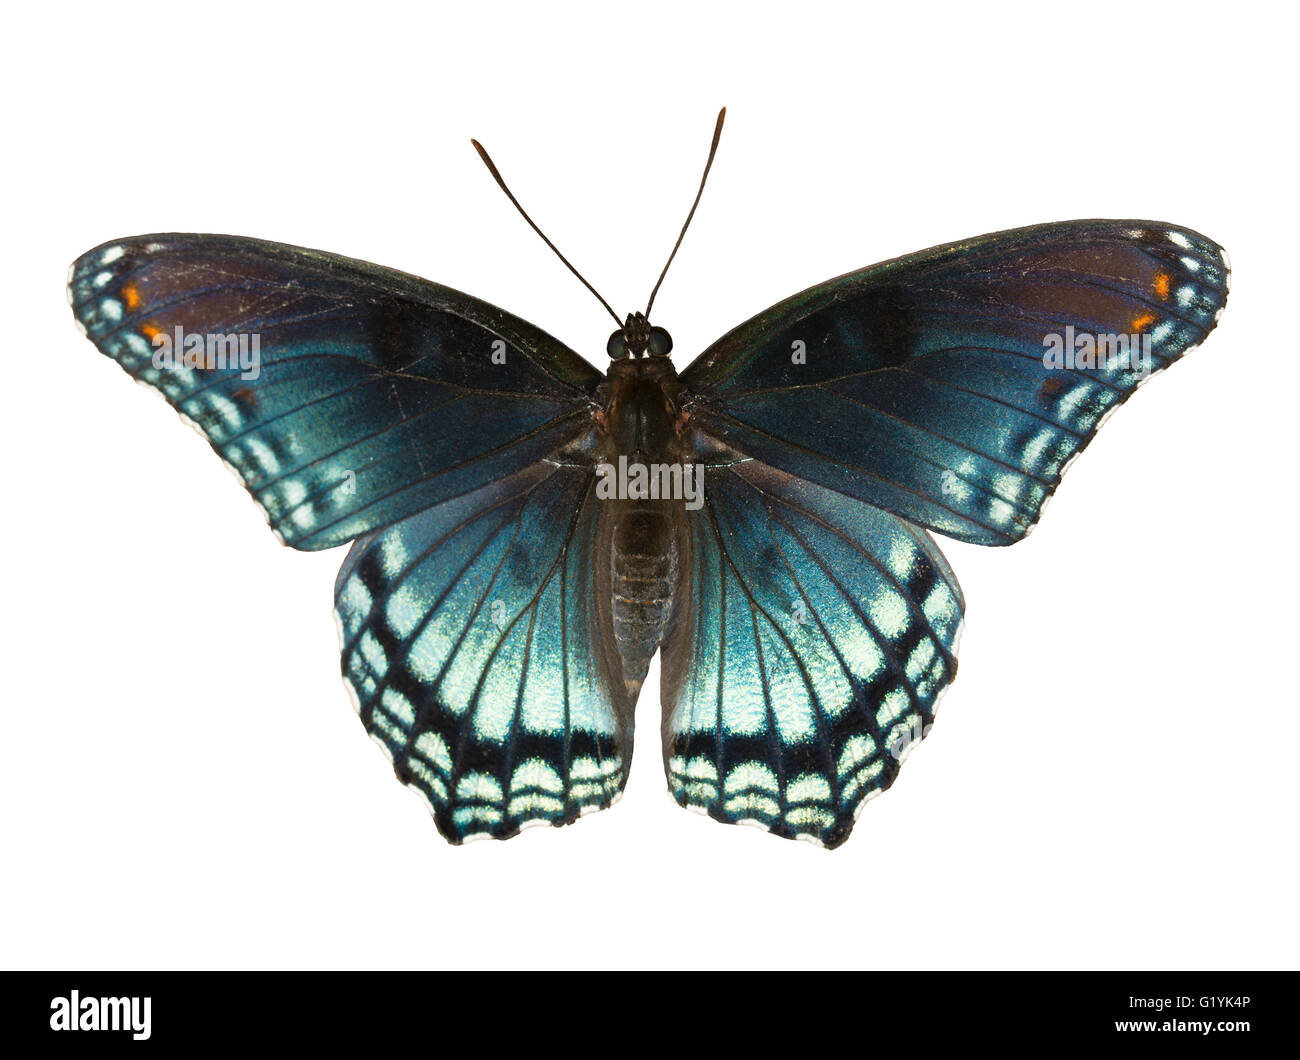 Red Spotted Purple Admiral, Limenitis arthemis astyanax, beautiful blue butterfly isolated on white - Stock Image